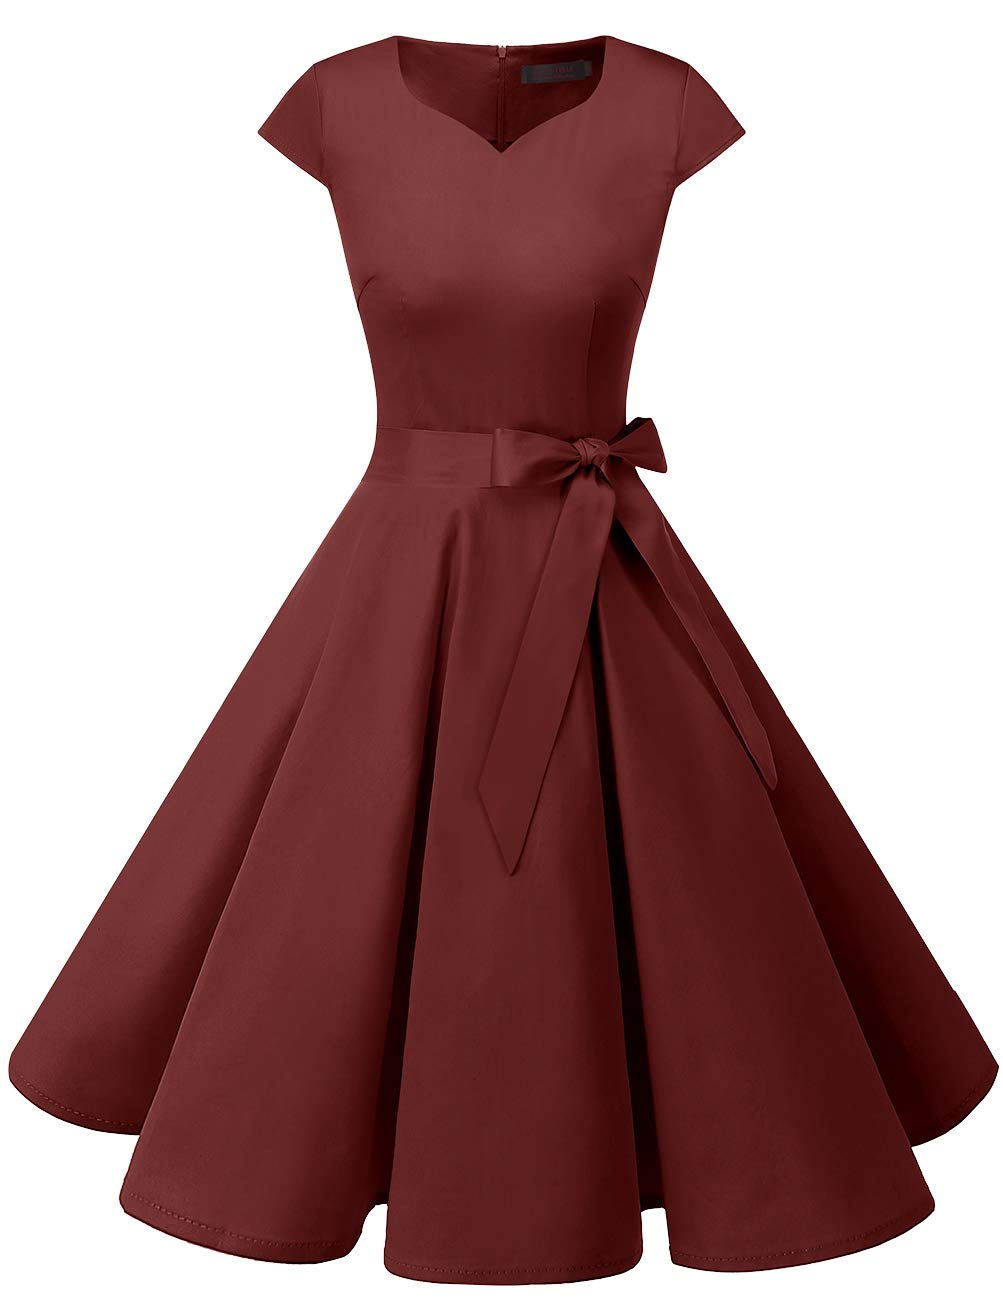 Available at Amazon: DRESSTELLS Women's Vintage Tea Dress Prom Swing Cocktail Party Dress with Cap-Sleeves